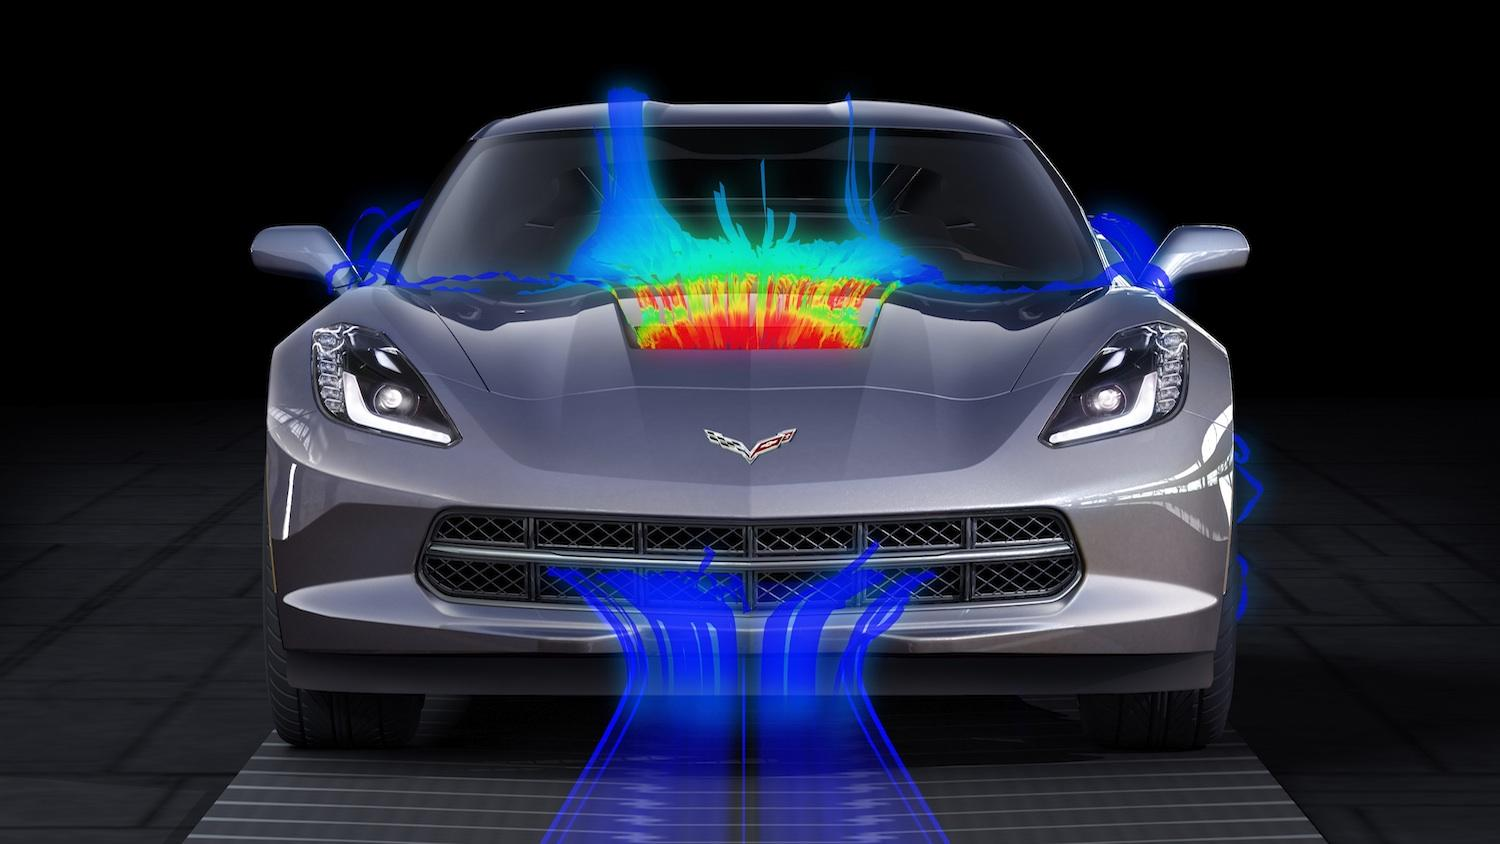 Chevrolet-Corvette-air-flow.jpg